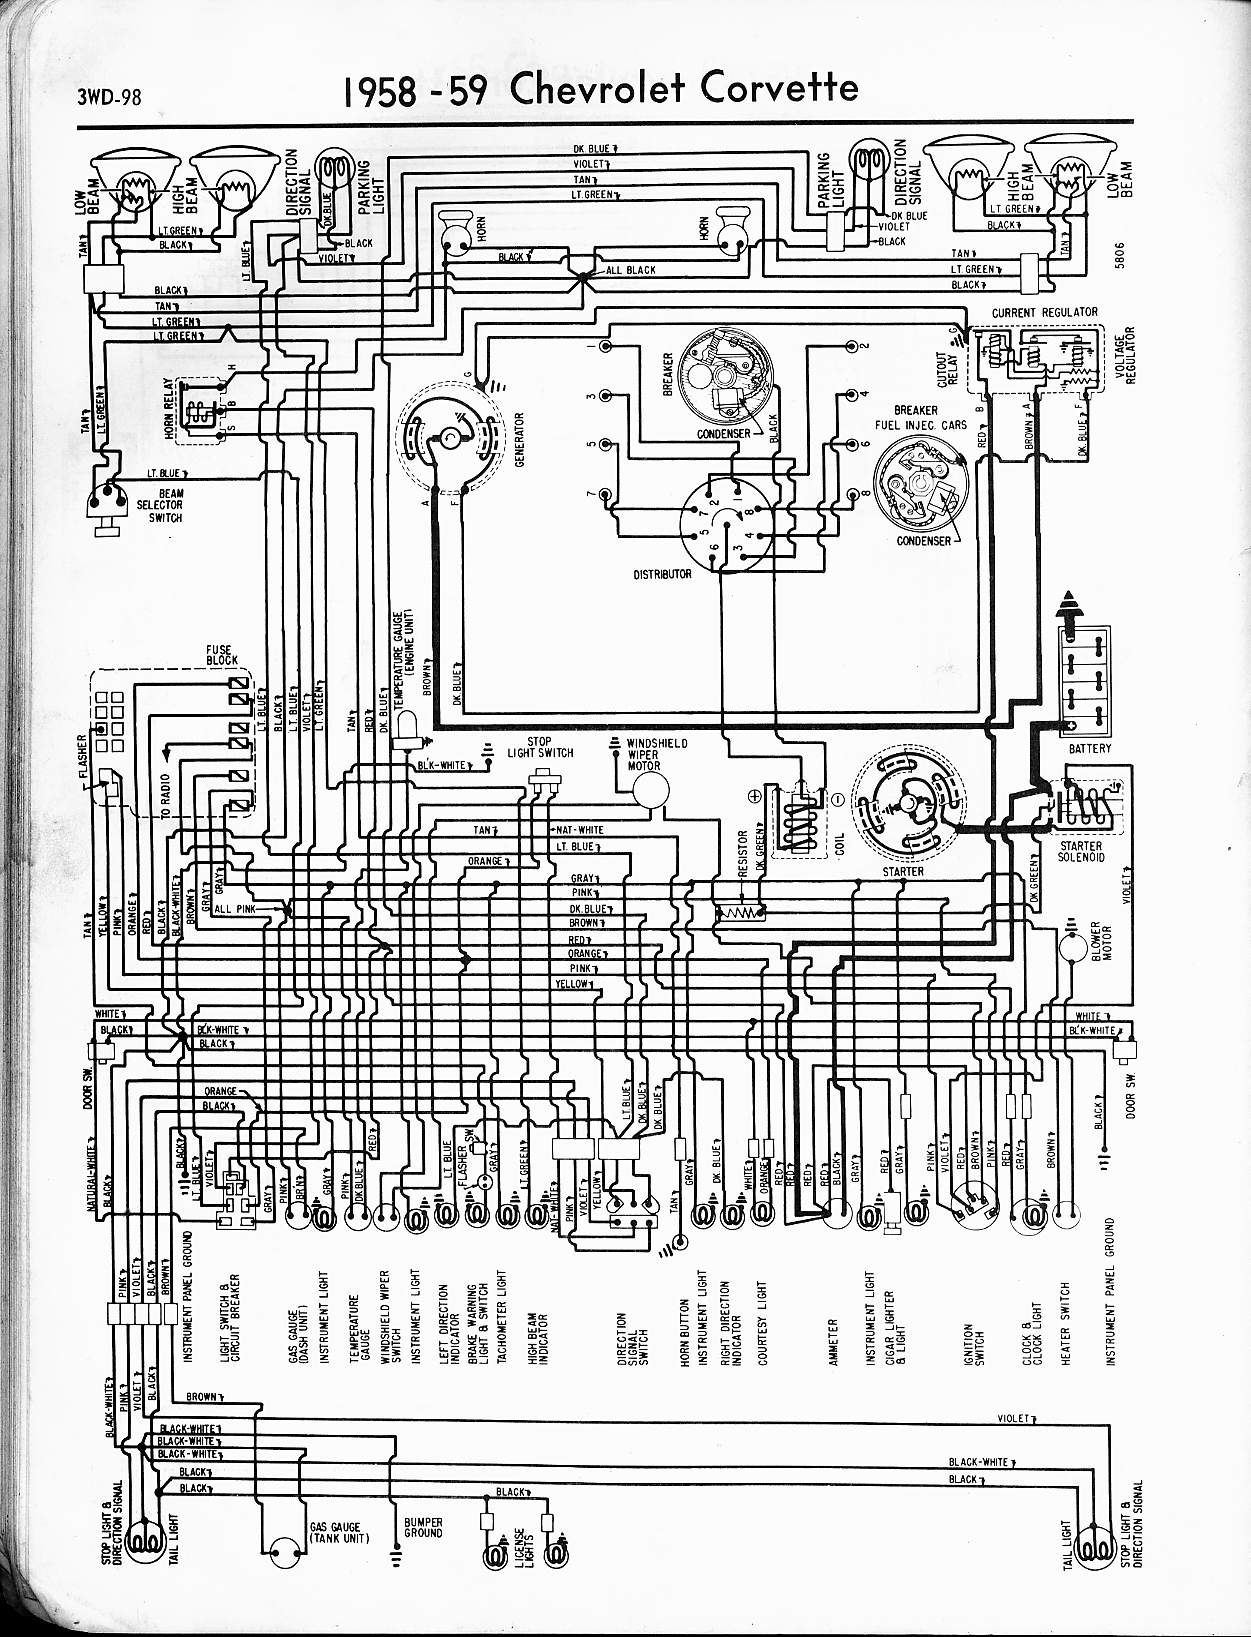 1960 Chevrolet Wiring Diagram Archive Of Automotive Chevy 57 65 Diagrams Rh Oldcarmanualproject Com Pickup Apache